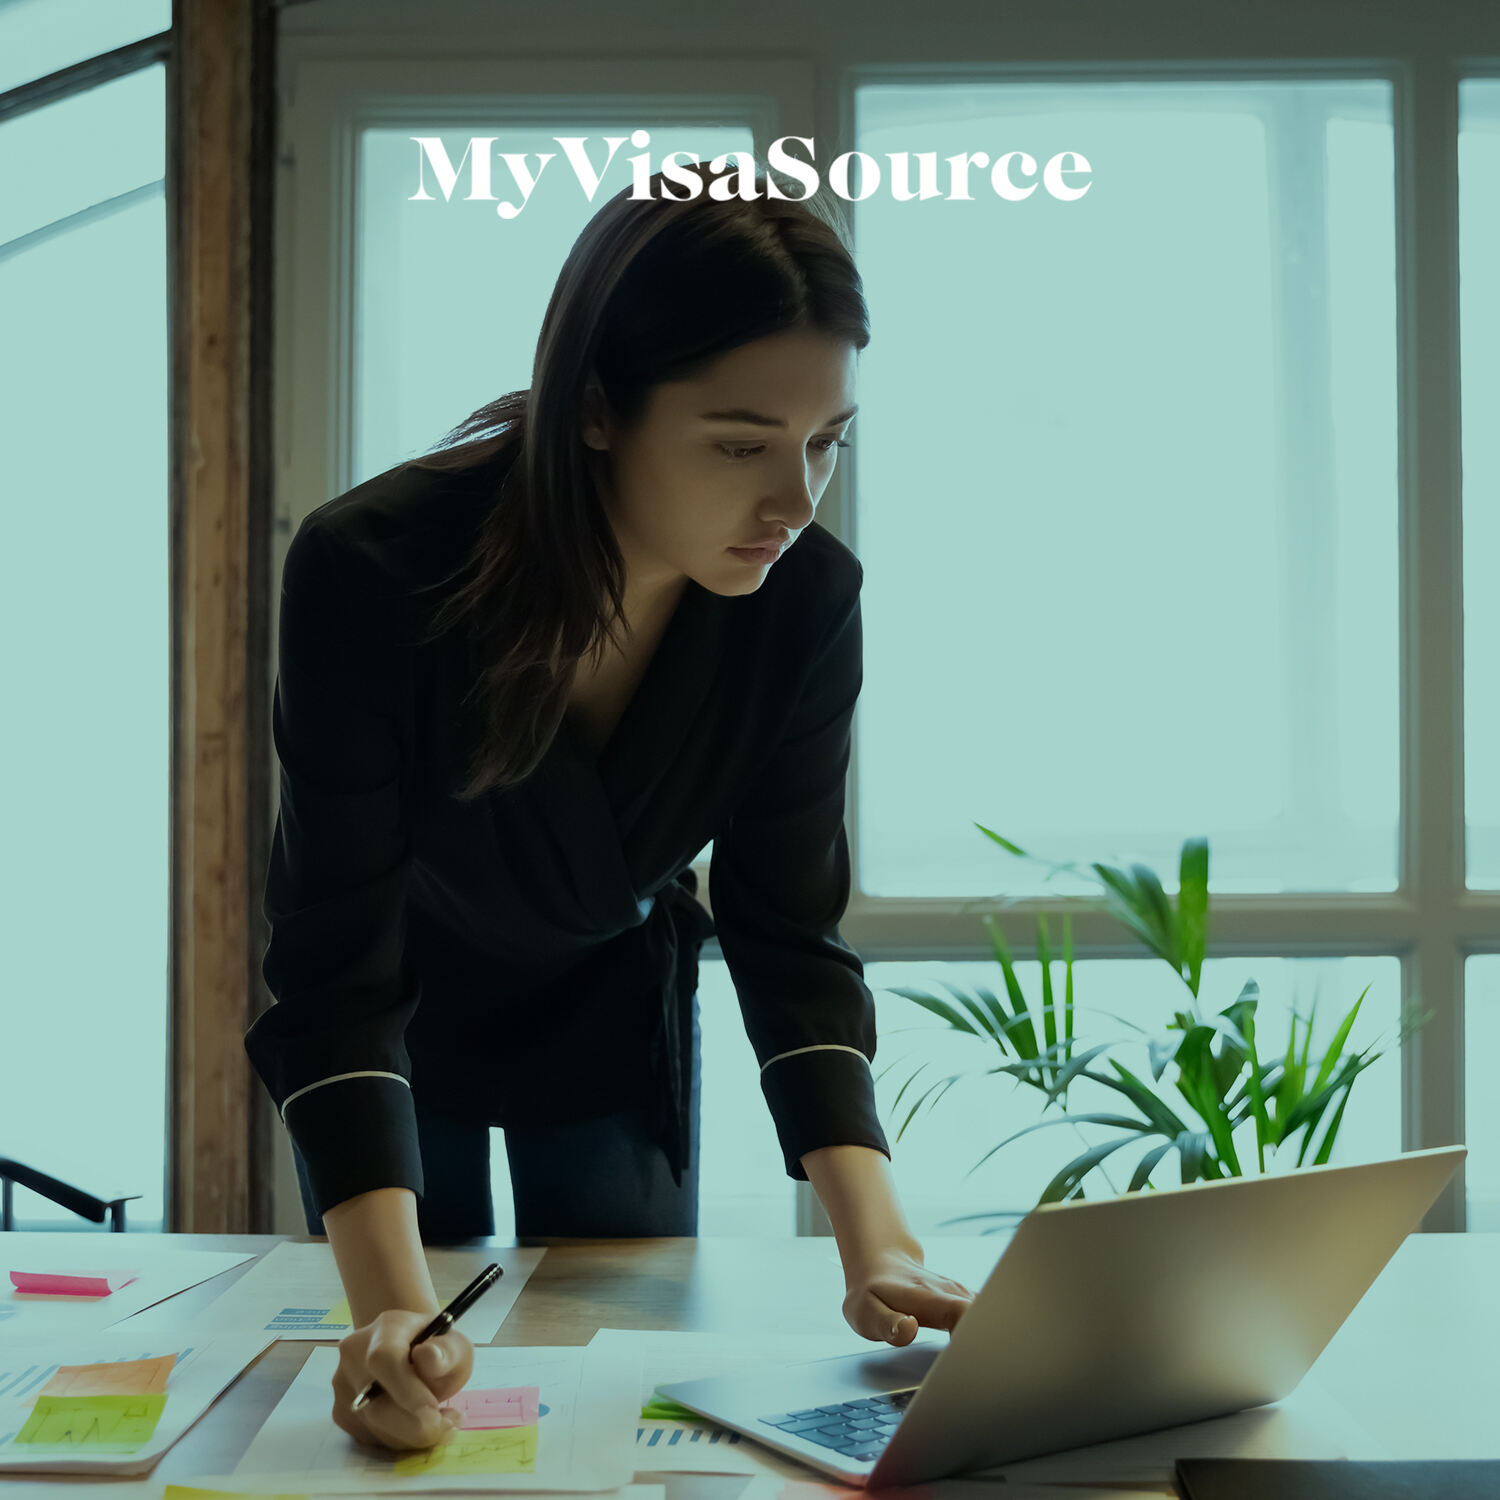 young woman working on laptop my visa source